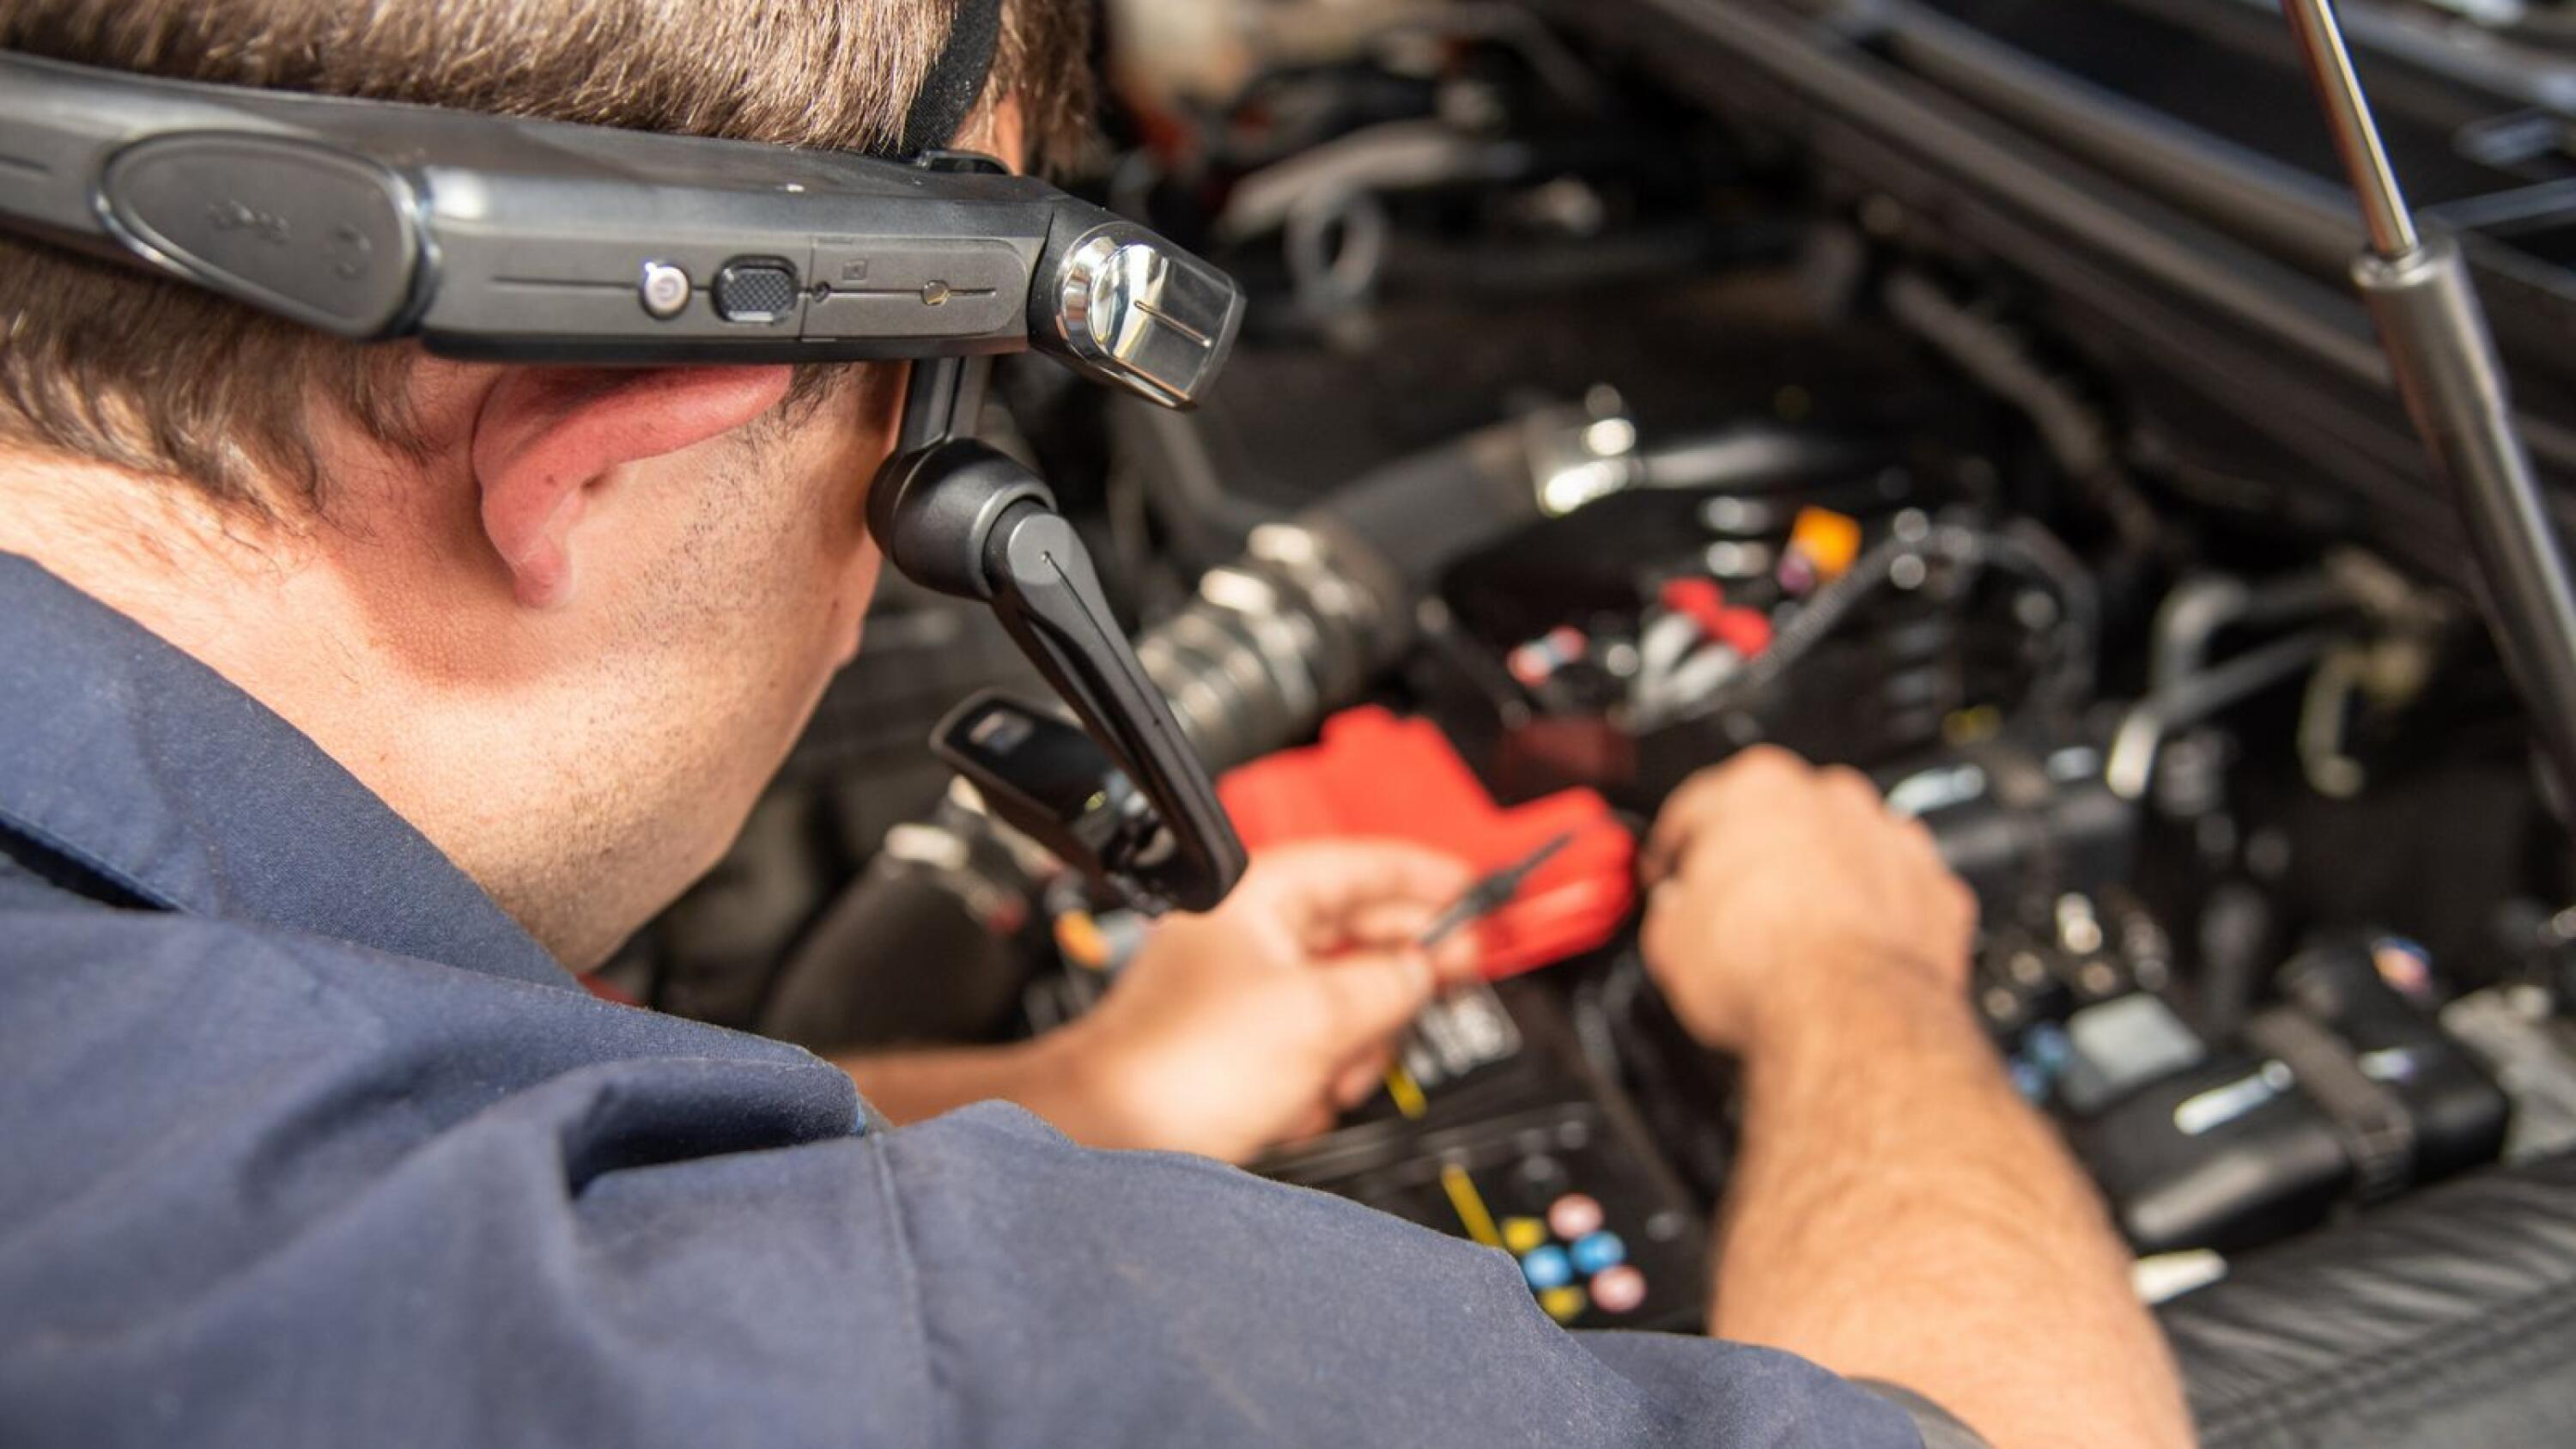 Every Ford dealership in South Africa will have a headset to expedite repairs.